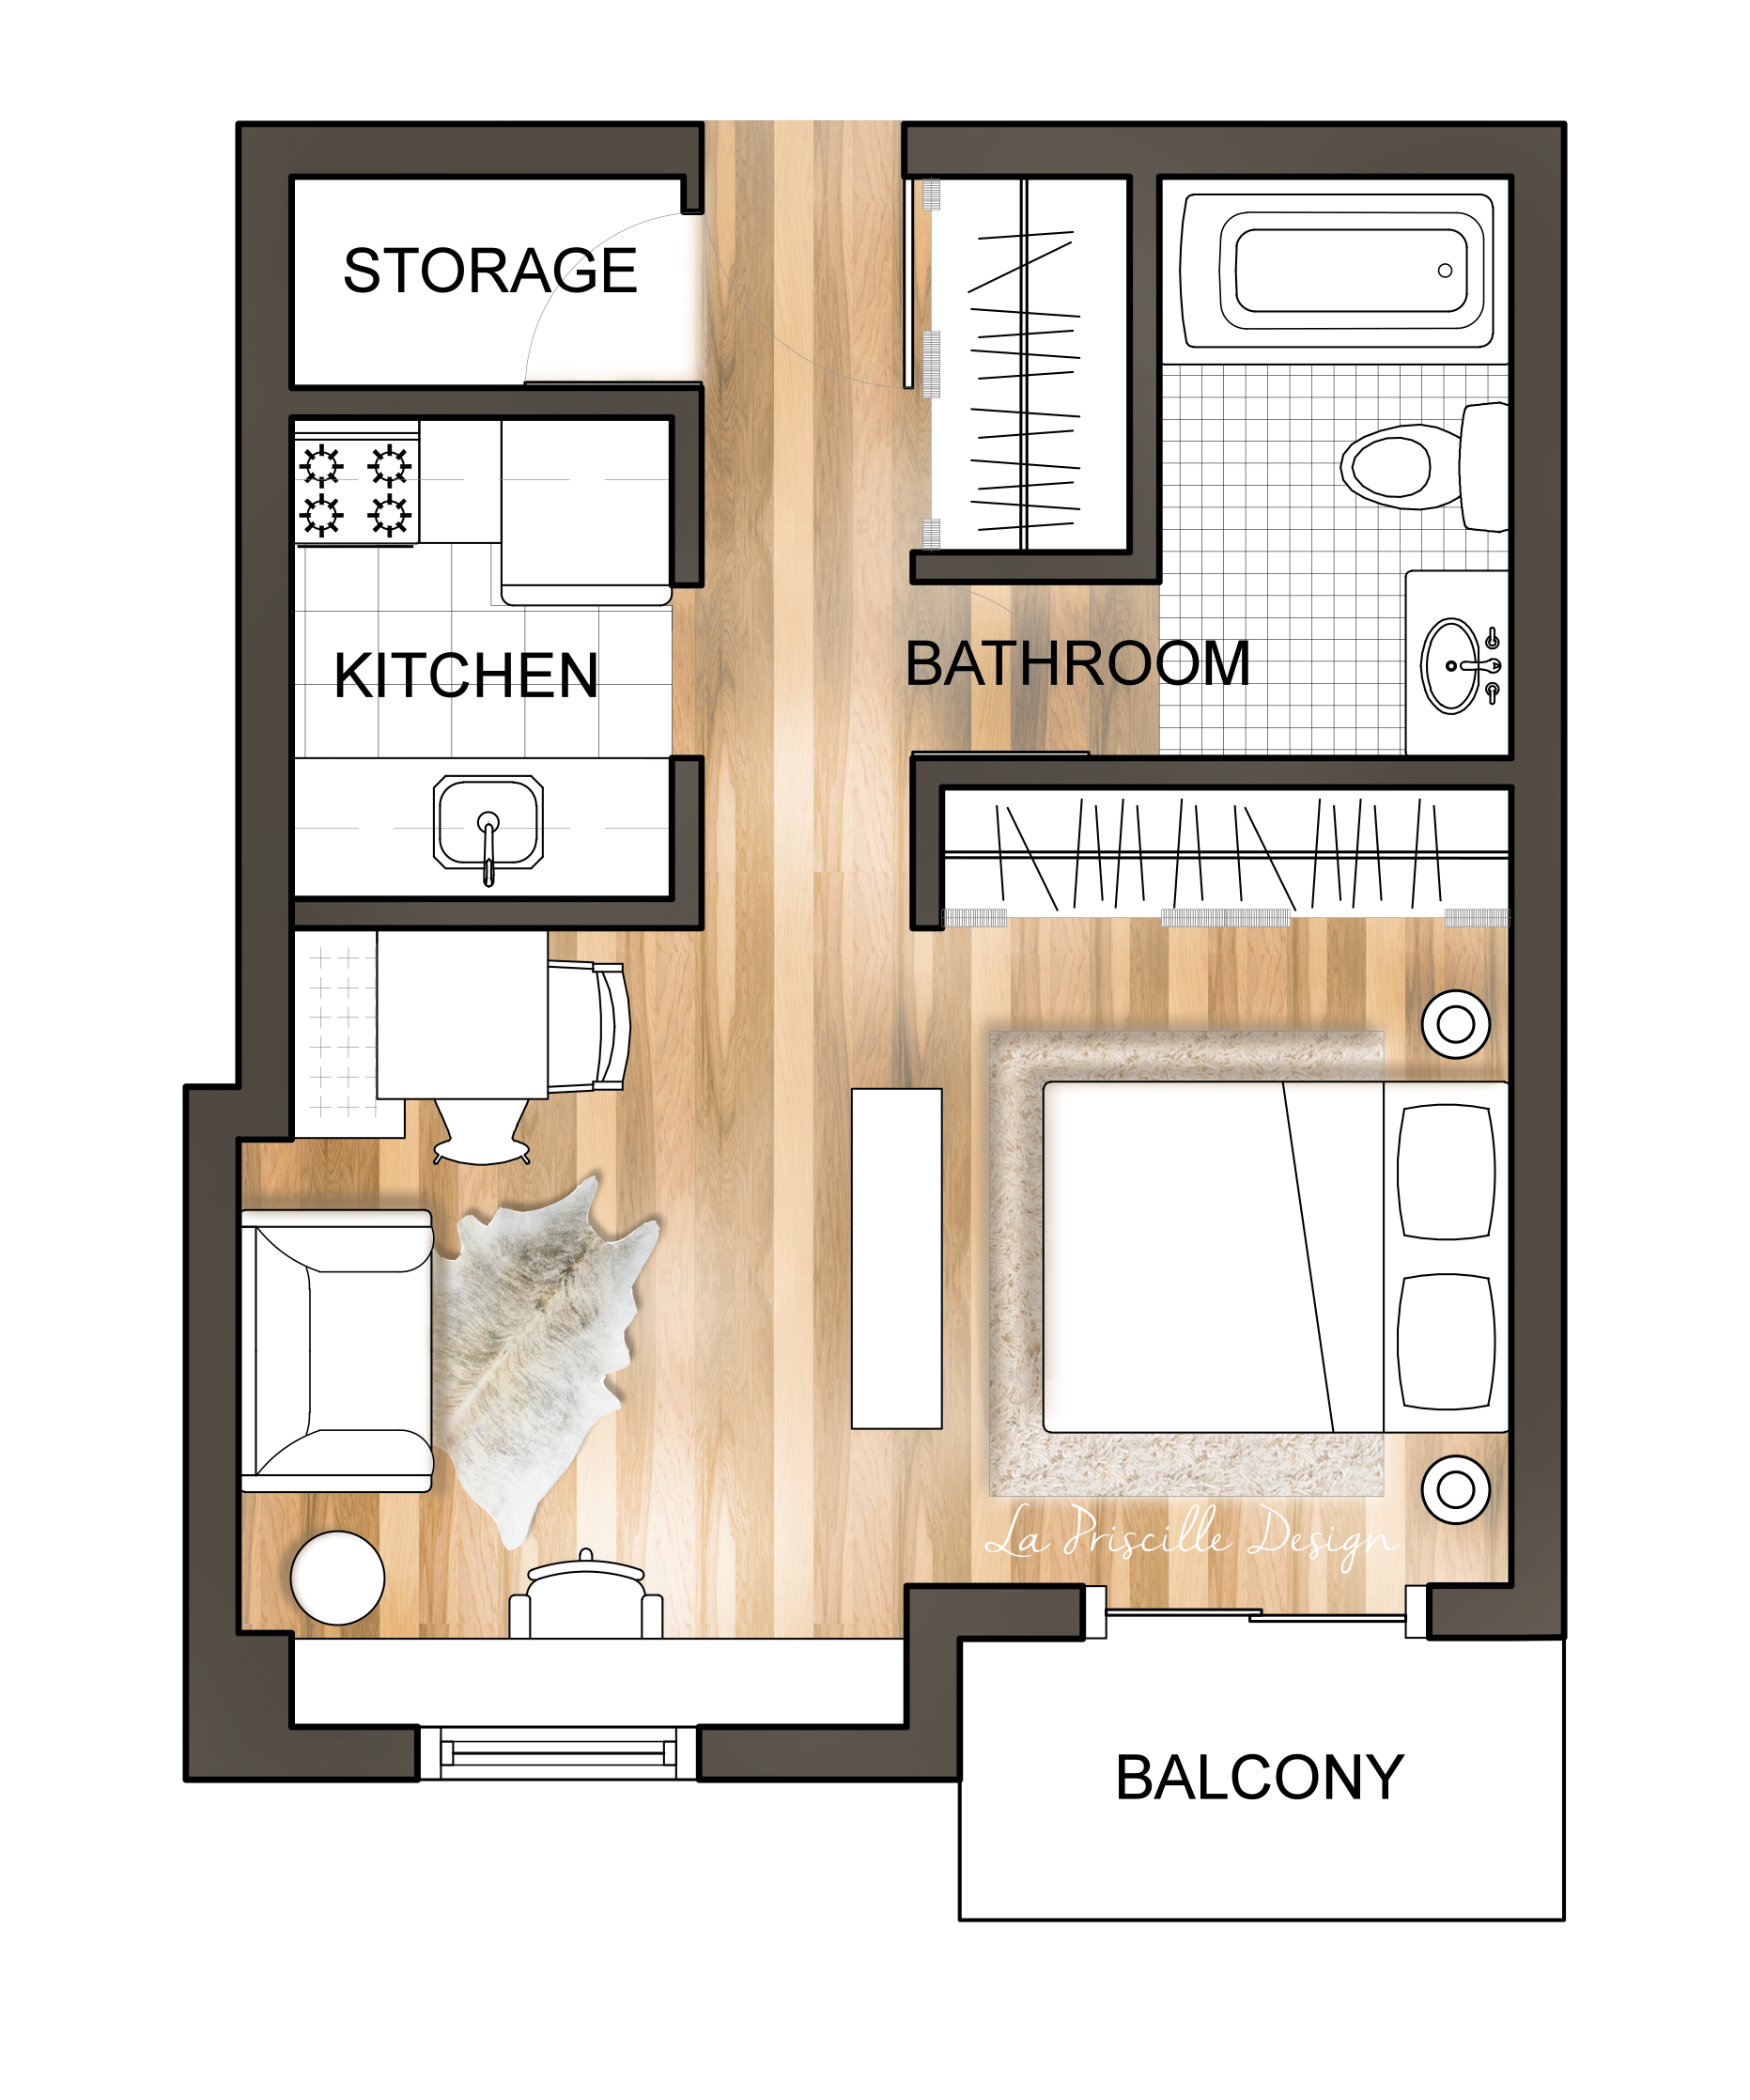 Downtown Studio Apartment Floor Plan Renderedfloorplan Smallapartmentplan Floorpl Studio Apartment Floor Plans Small Apartment Plans Apartment Floor Plans